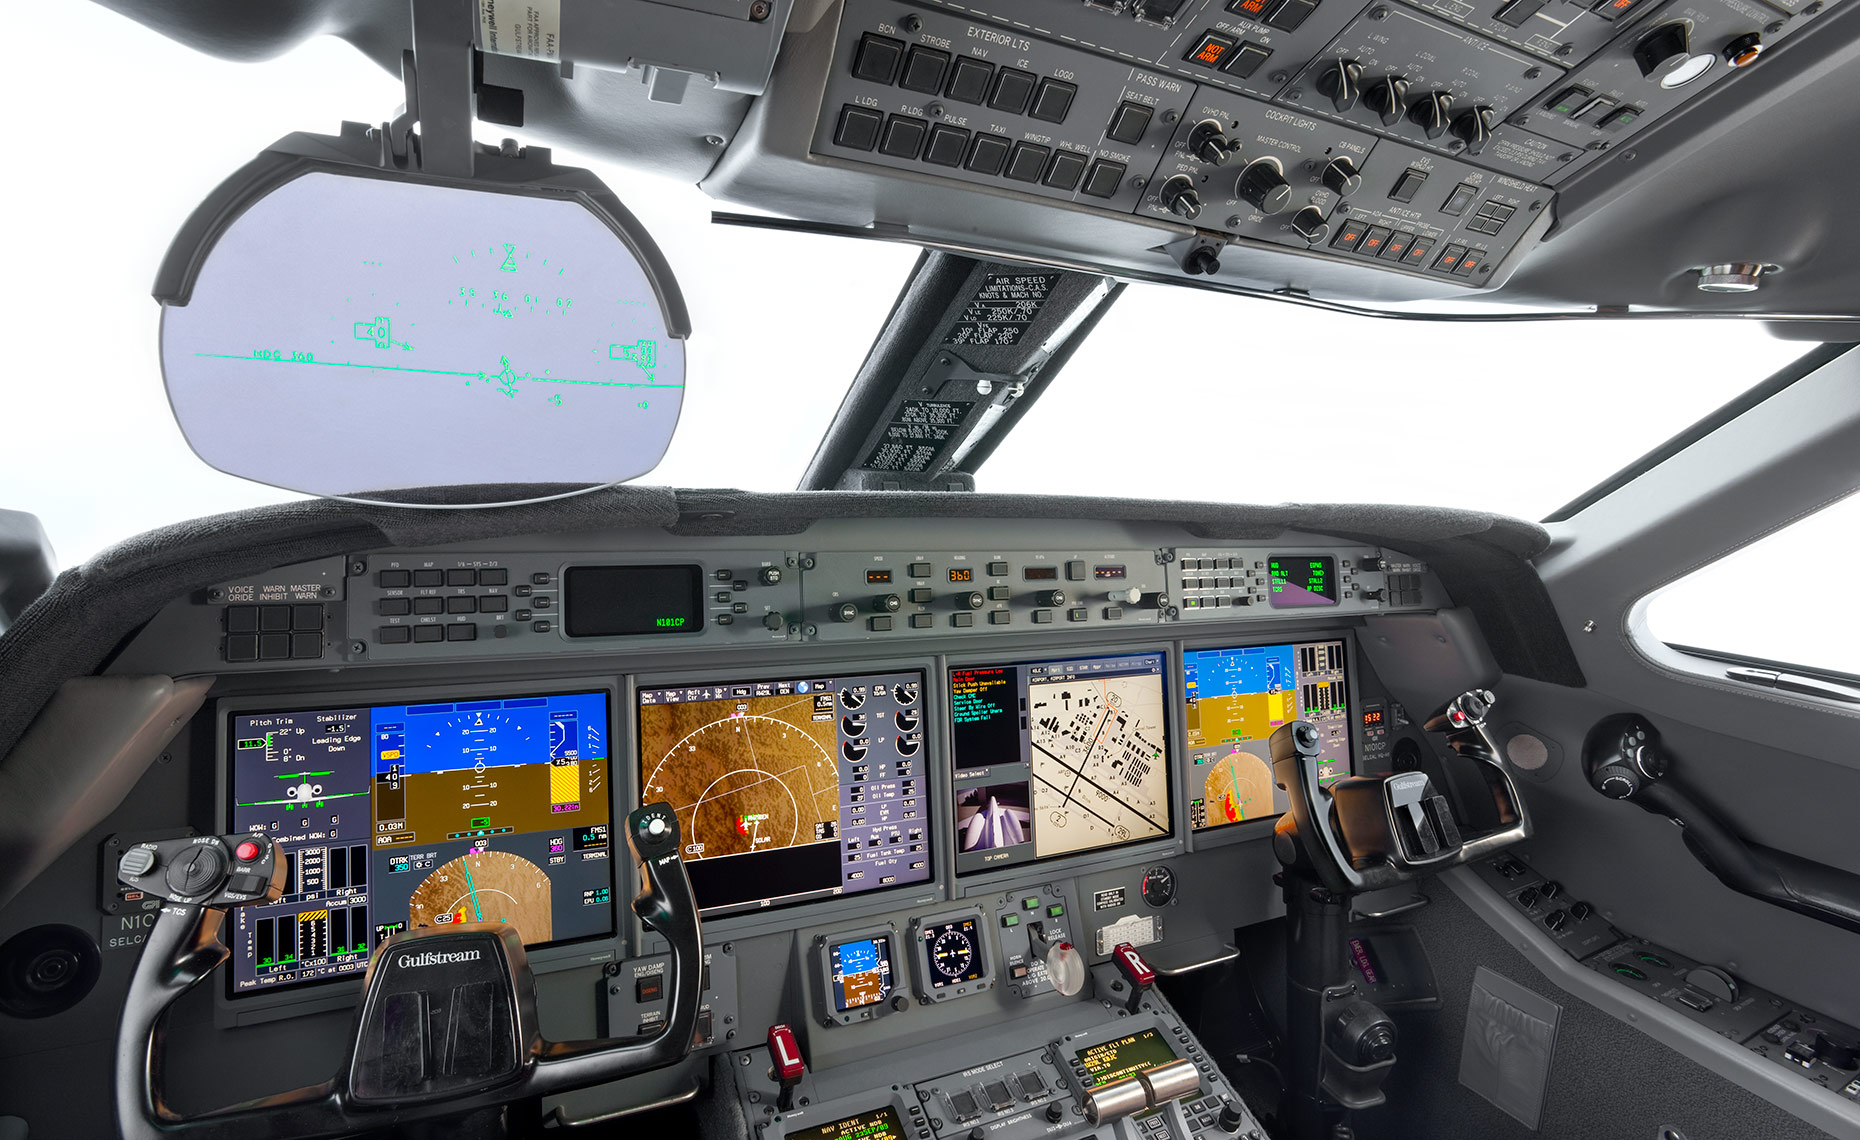 Gulfstream Flight Deck with HUD